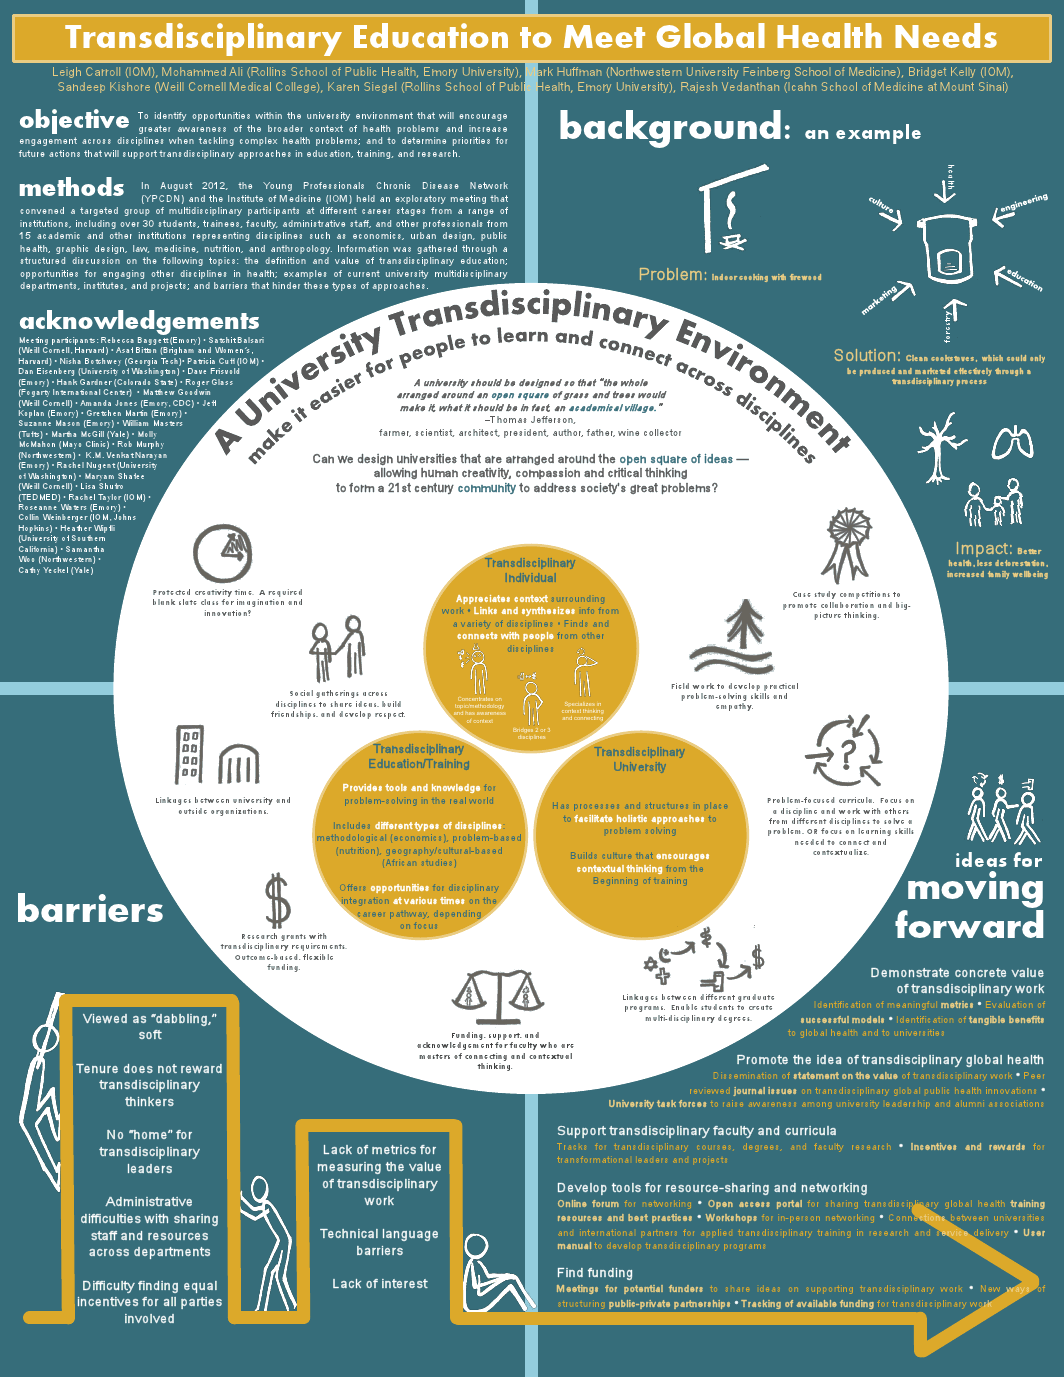 Poster design education - Innovative Poster Highlights Work Towards Trans Disciplinary Education For Global Health